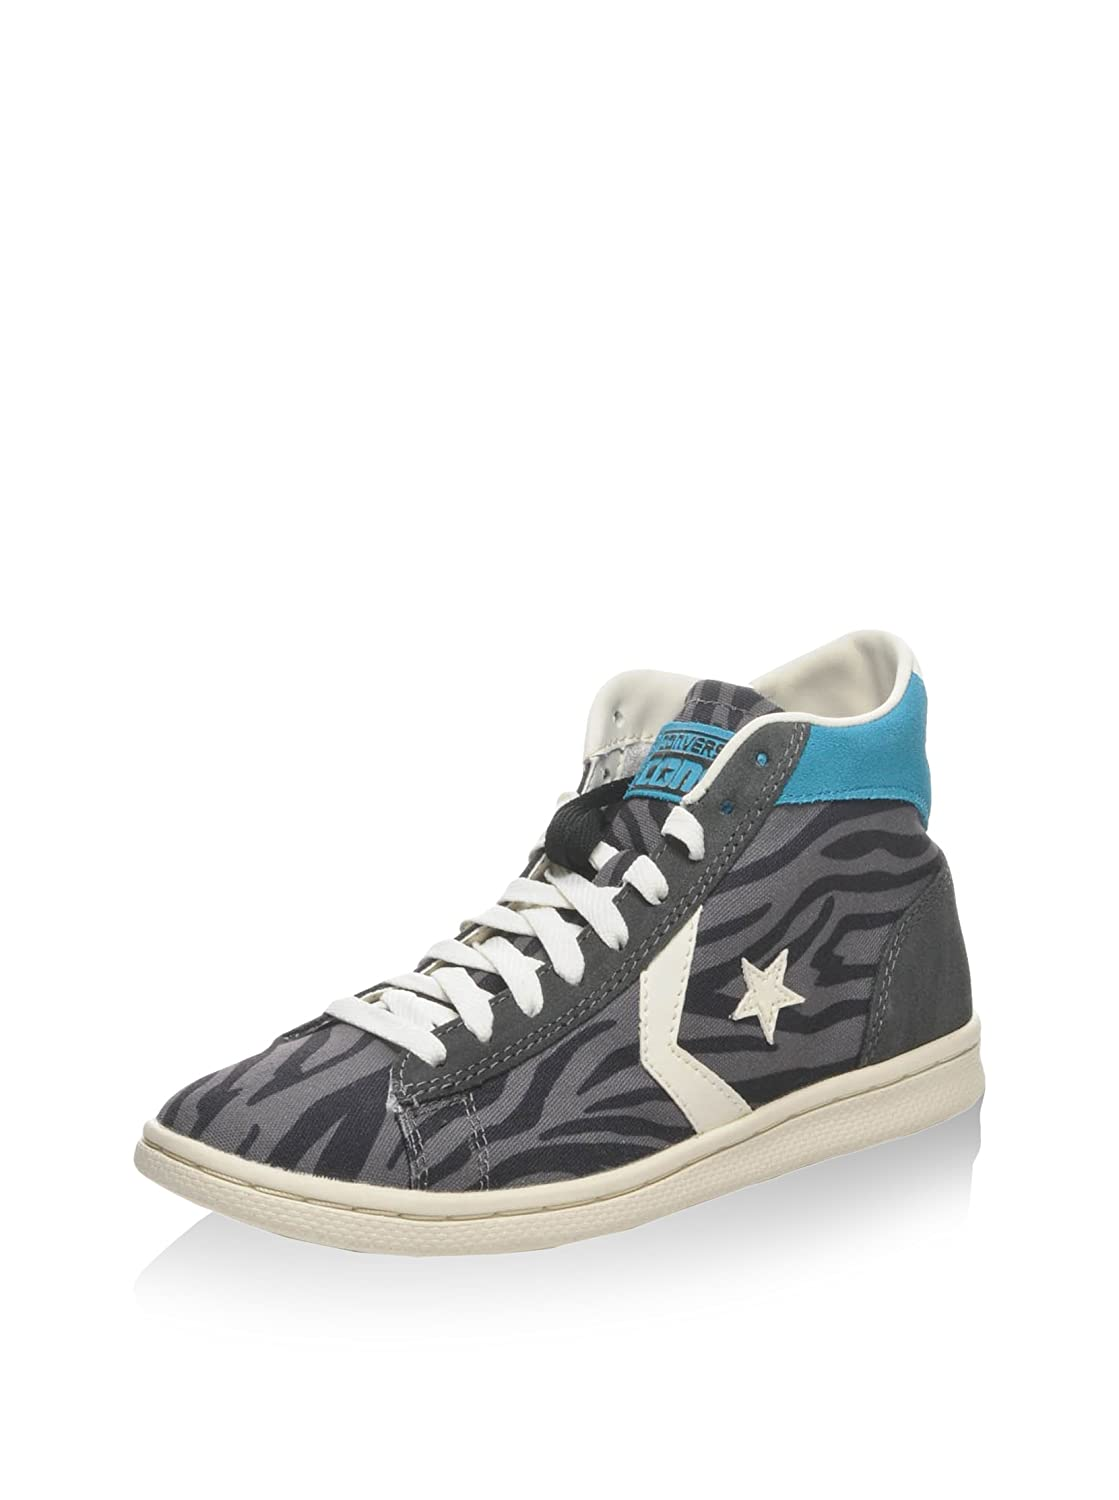 Converse Hightop Sneaker Pro LP Mid Can Zip PRI Grau/Carbon EU 36.5 nob4Ip